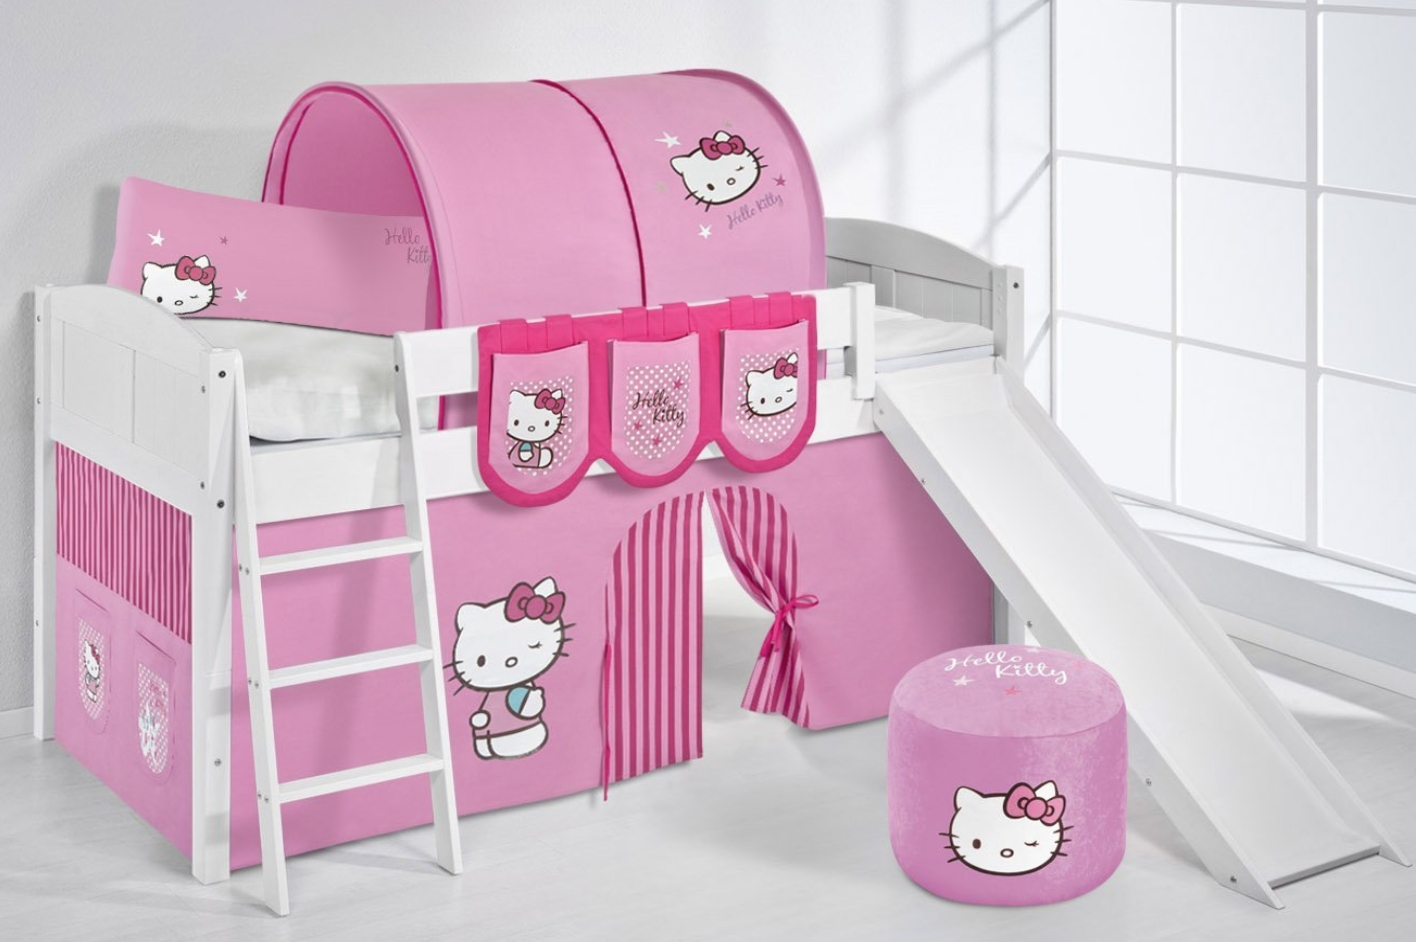 lit sur lev blanc laqu toboggan ida rideau hello kitty sommier sans sommier sans matelas. Black Bedroom Furniture Sets. Home Design Ideas